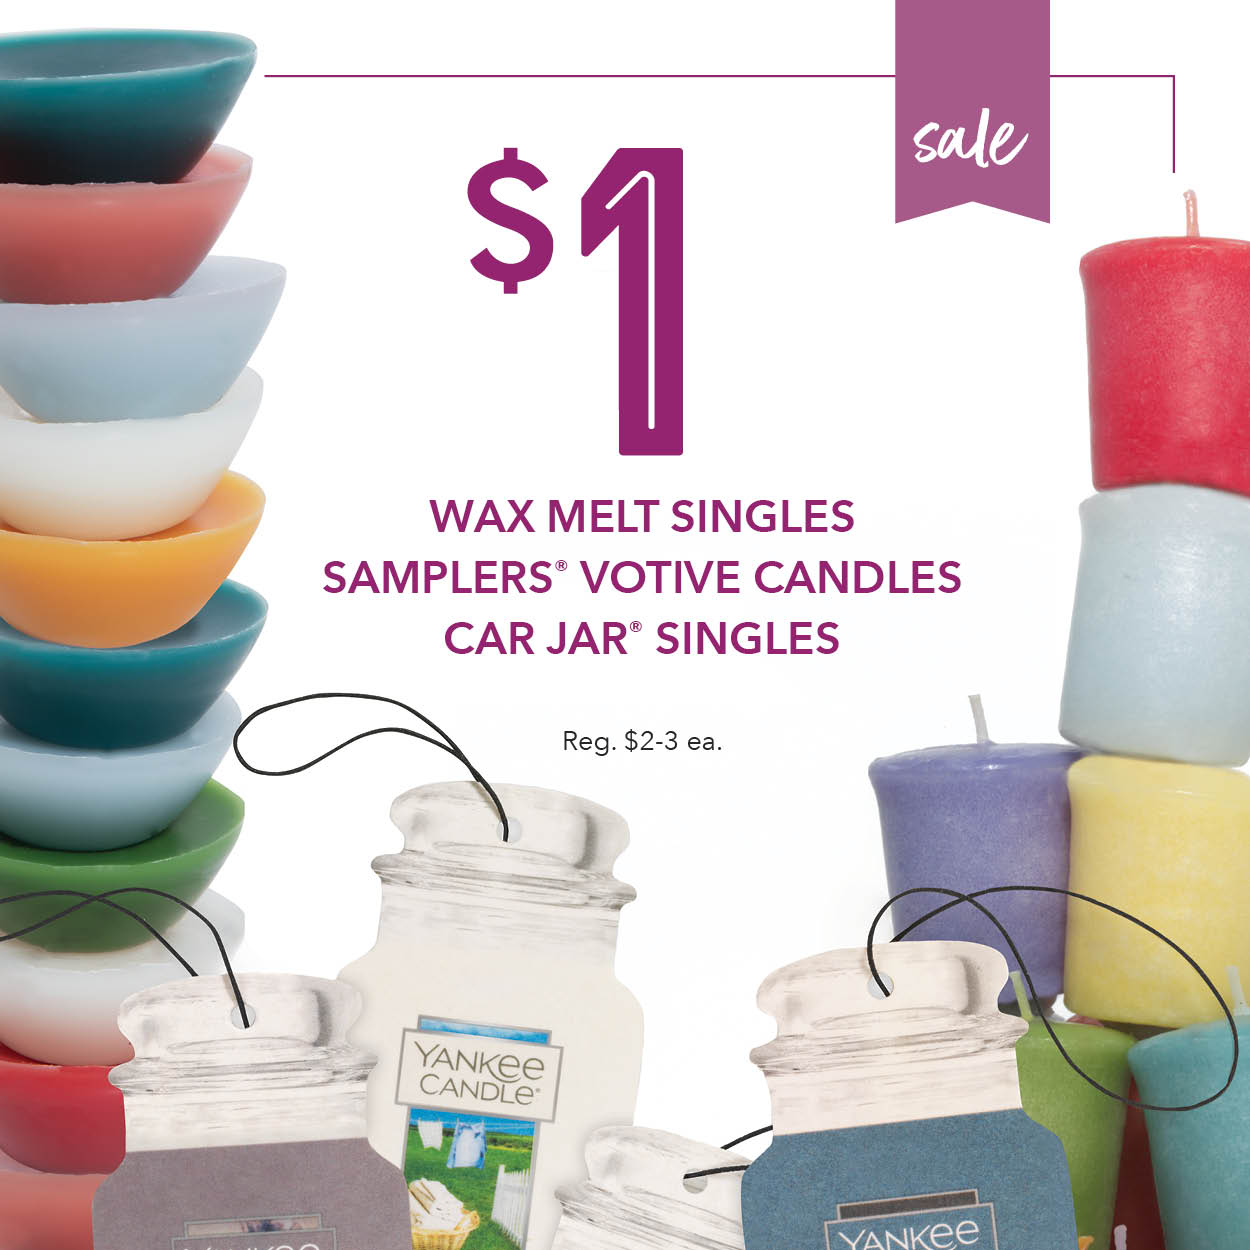 Yankee Candle - $1 Wax Melts!